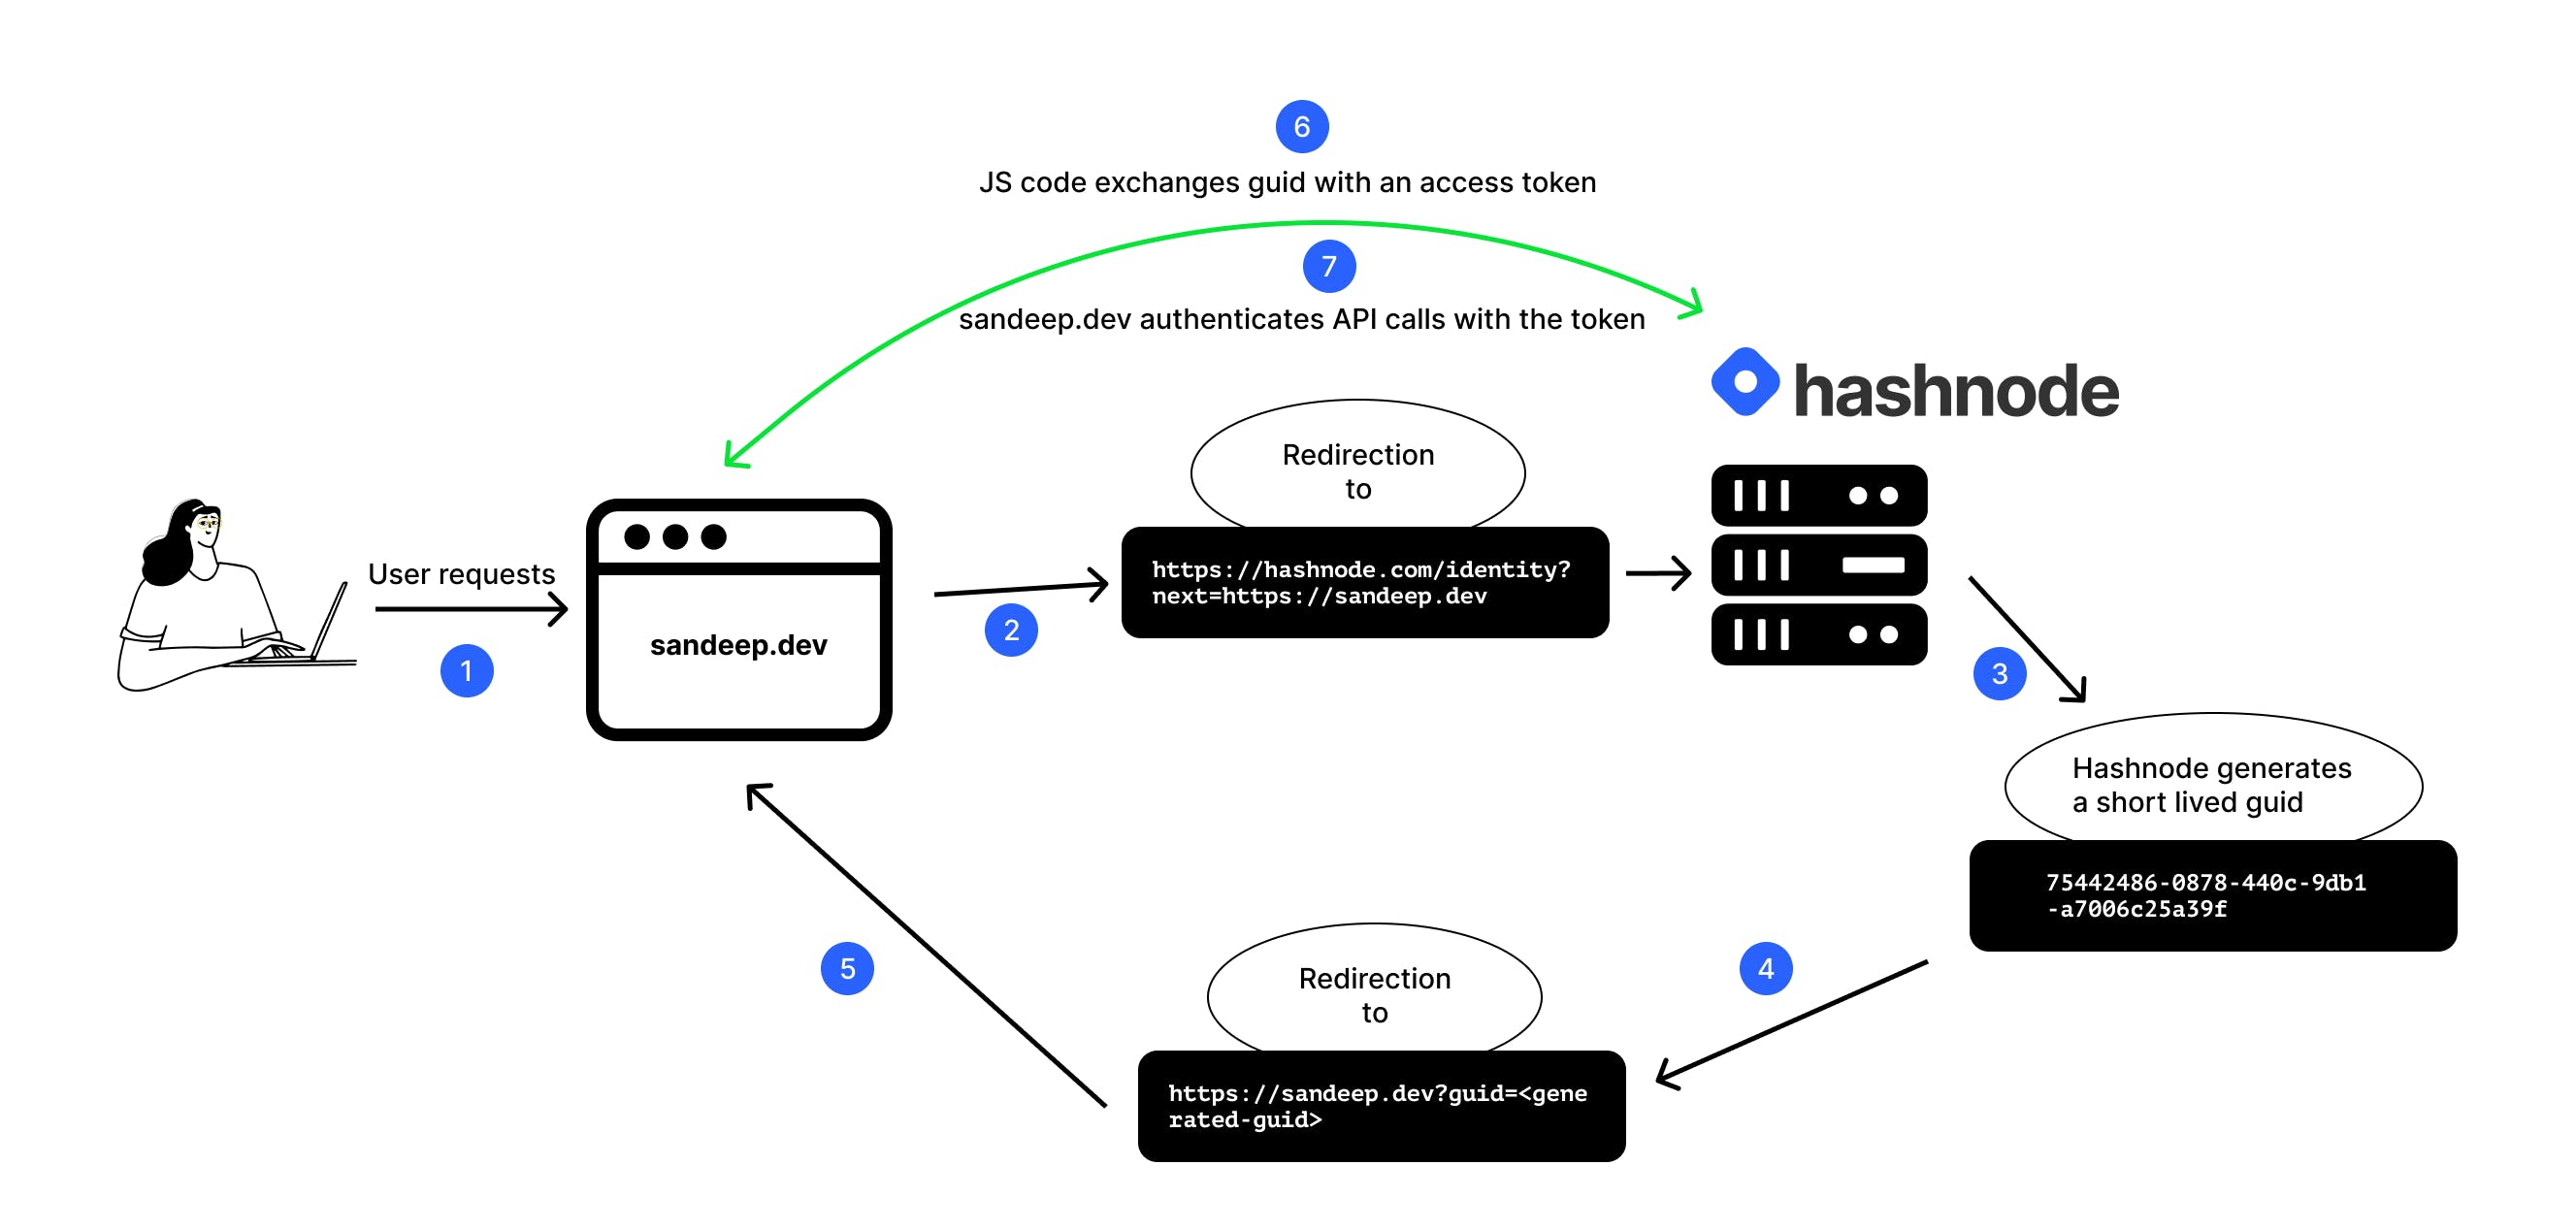 hn-authentication-chart.png